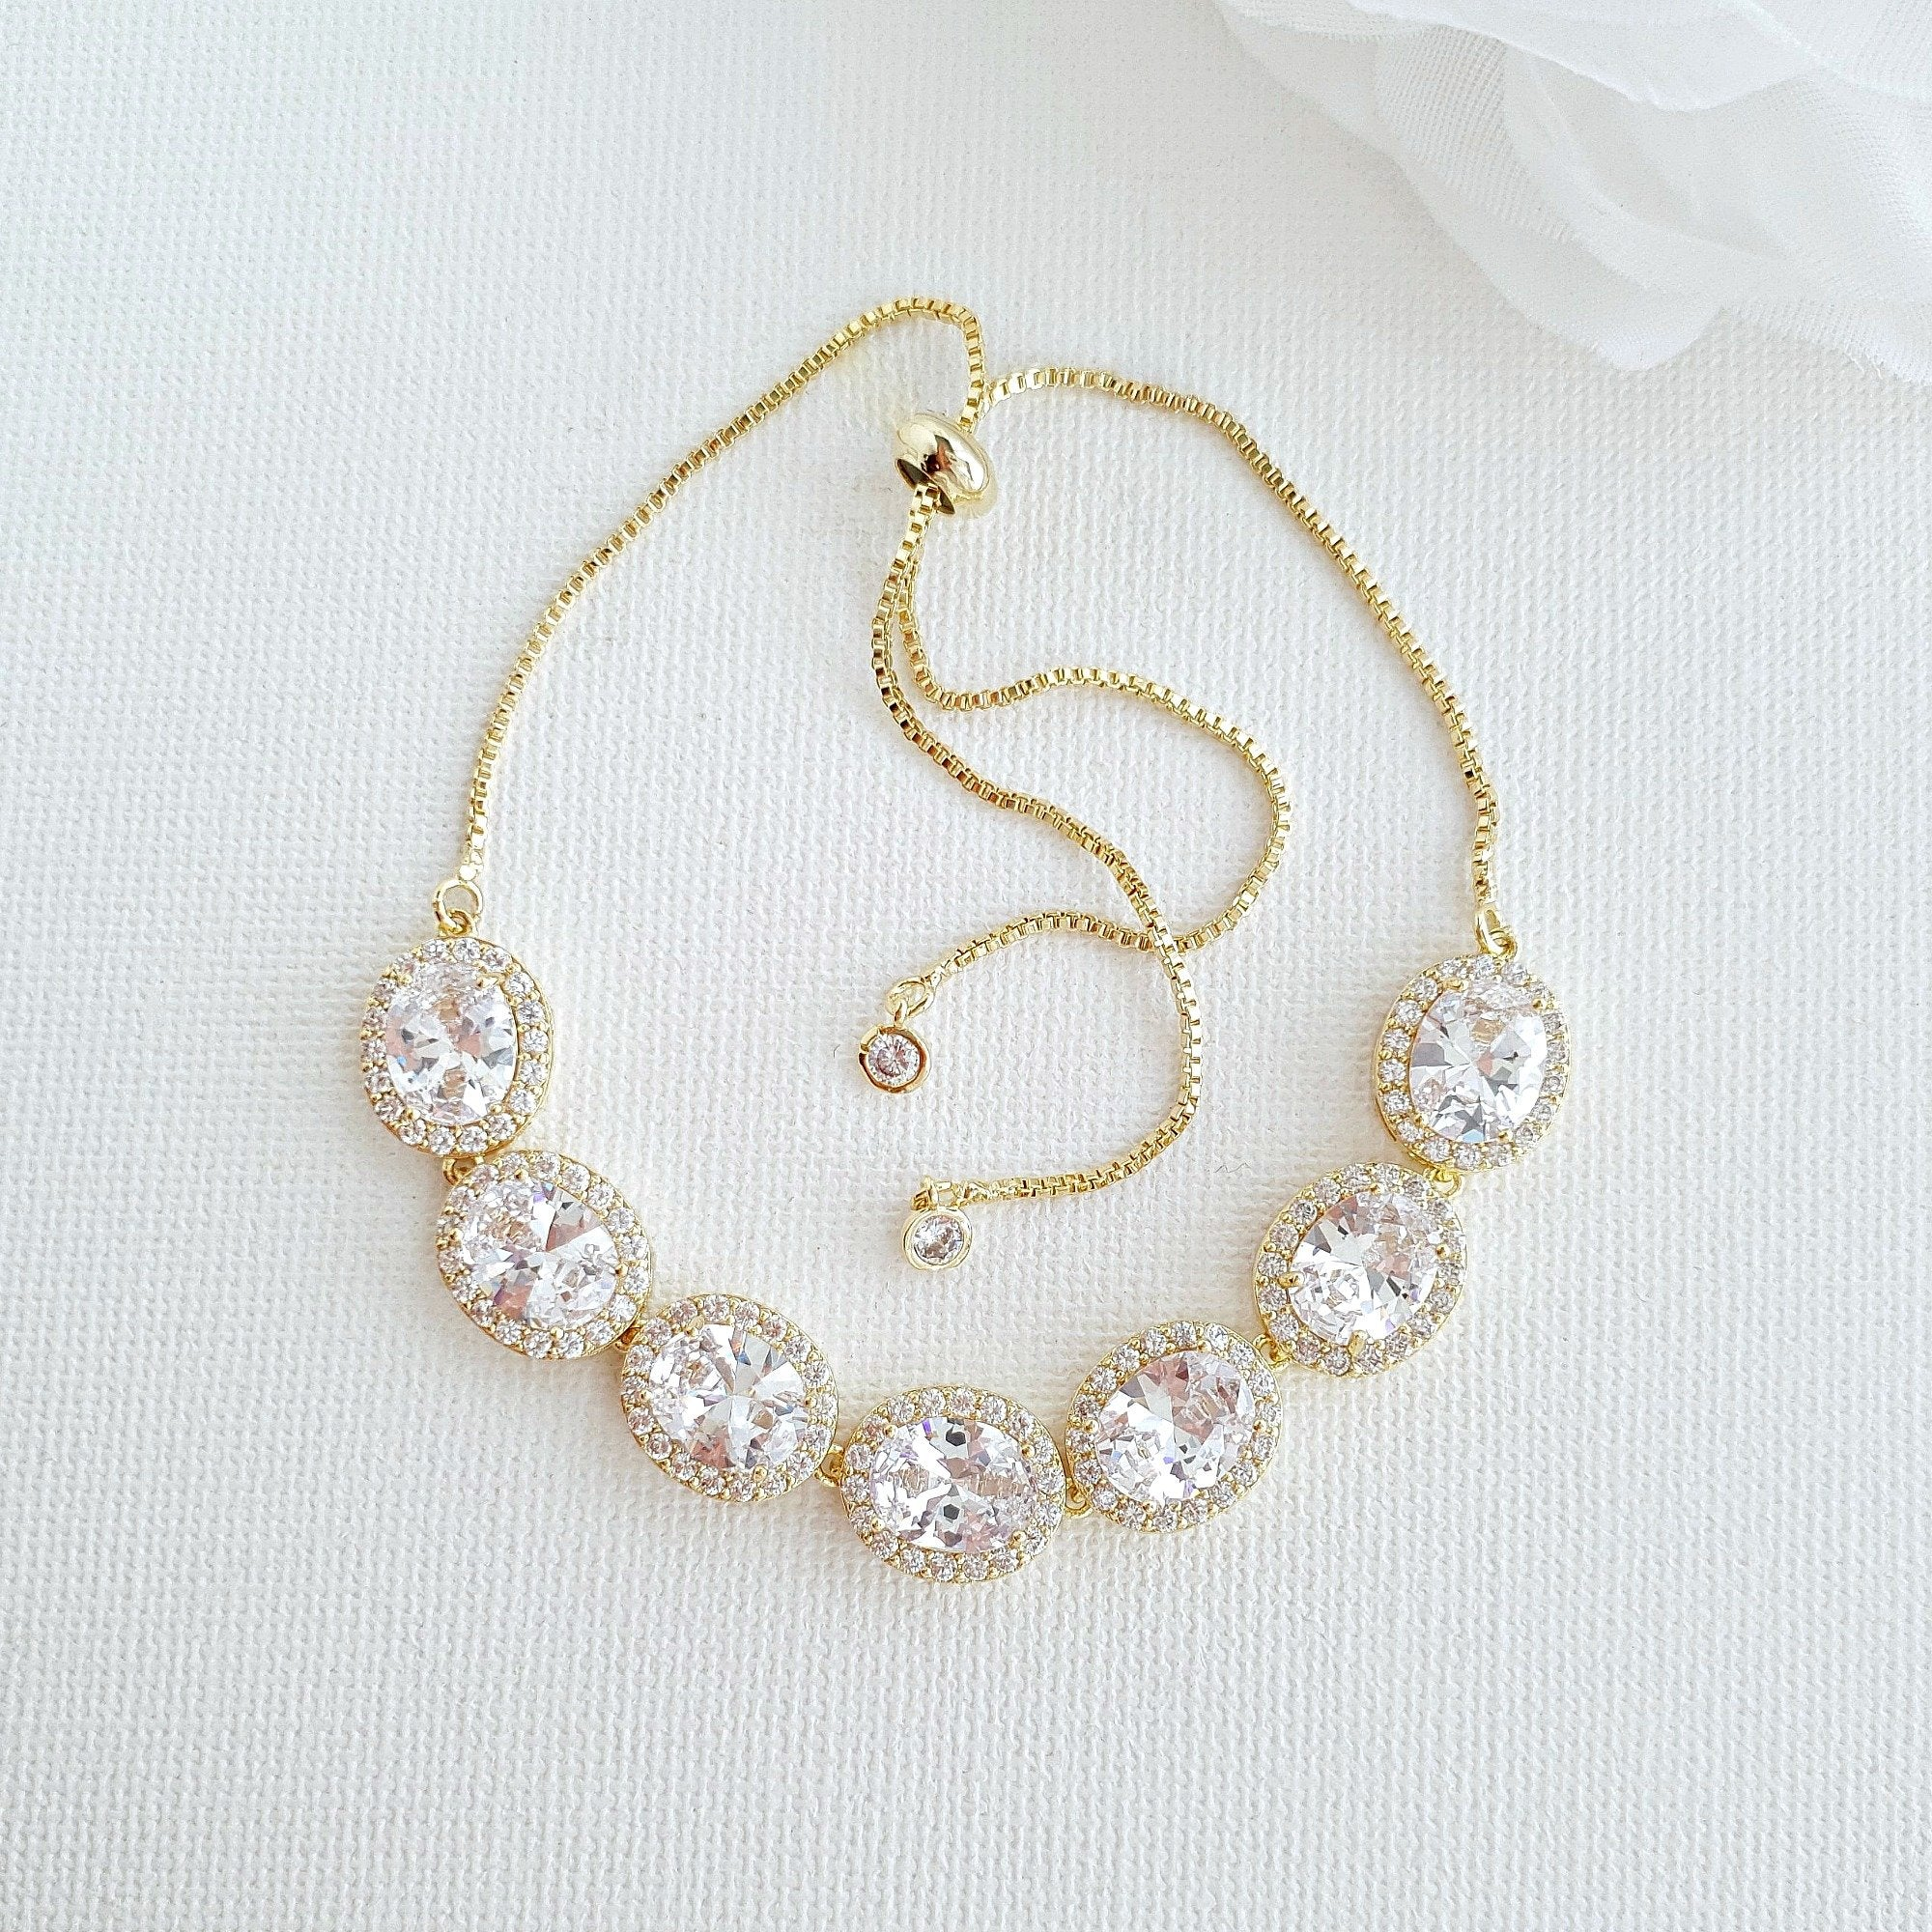 Gold and Cubic Zirconia Bridal Bracelet- Emily - PoetryDesigns